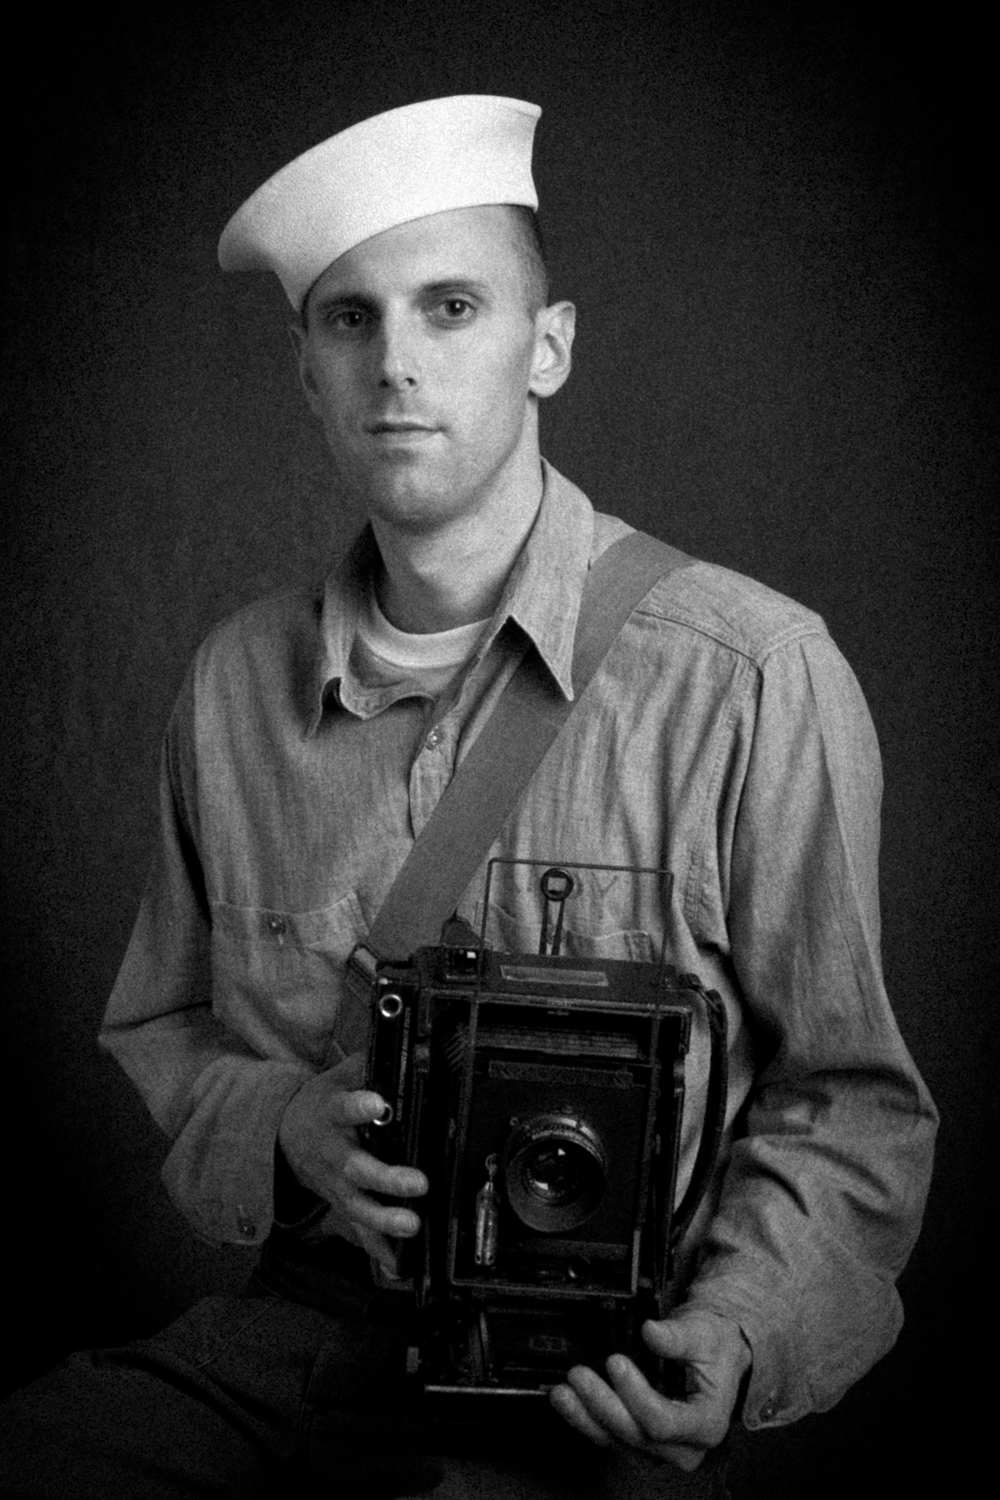 Me in my vintage World War II U.S. Navy Photographer's Mate impression with a period 4x5 Anniversary Speed Graphic camera.